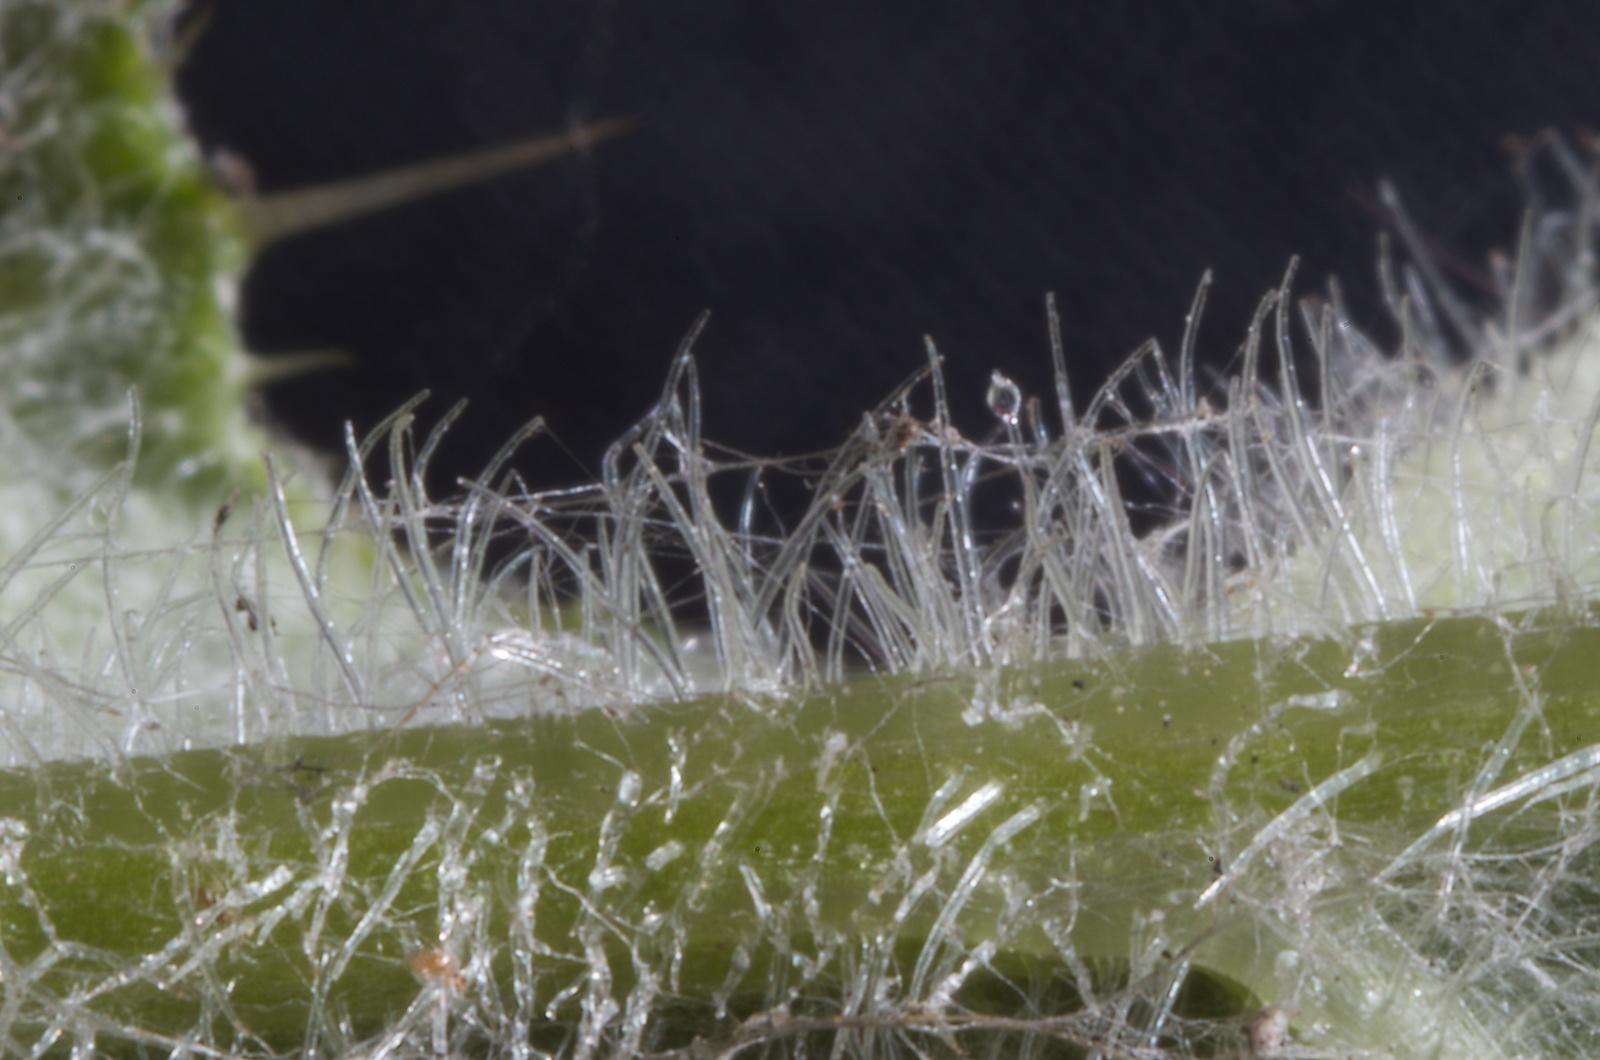 Hairs on thistle stem